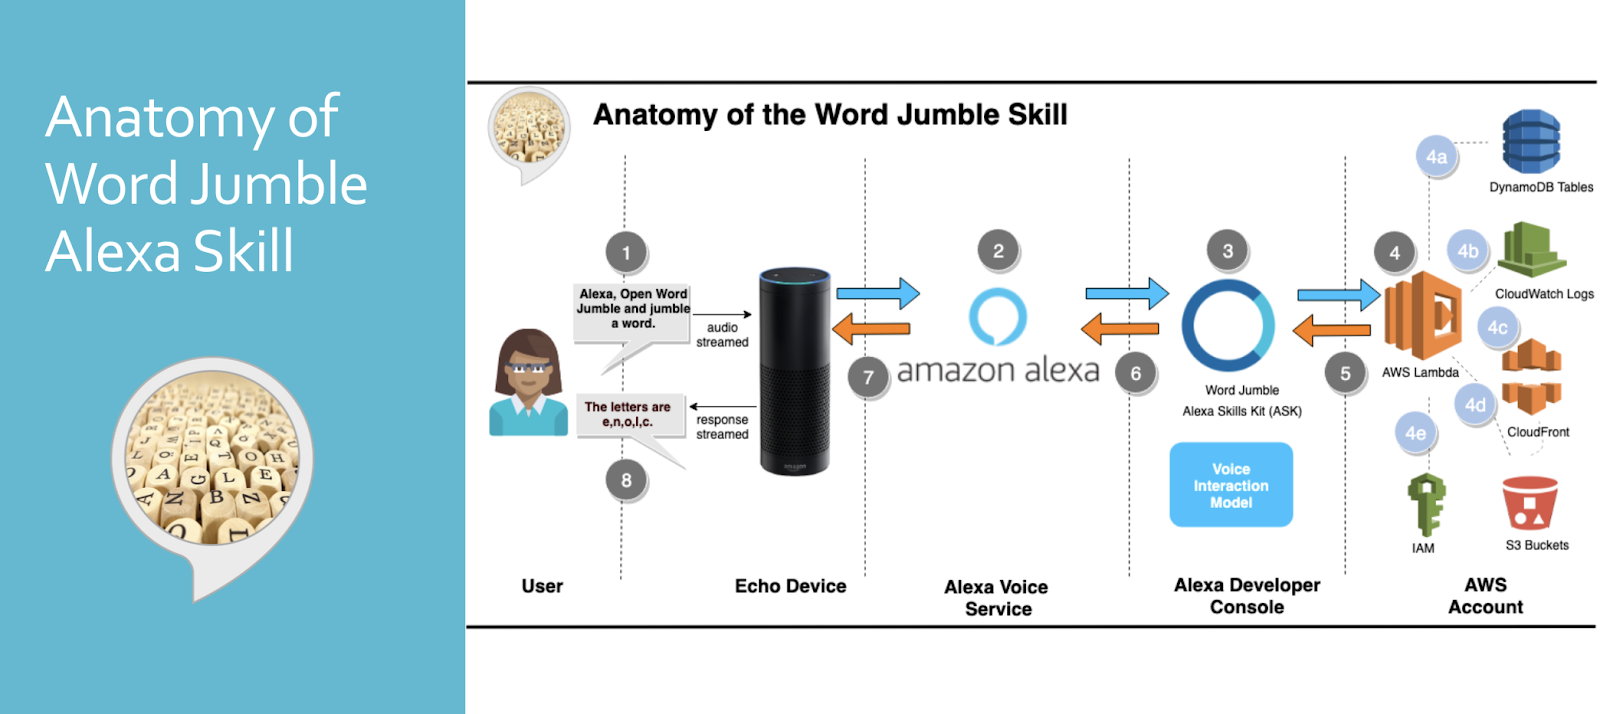 Anatomy of an Alexa Skill